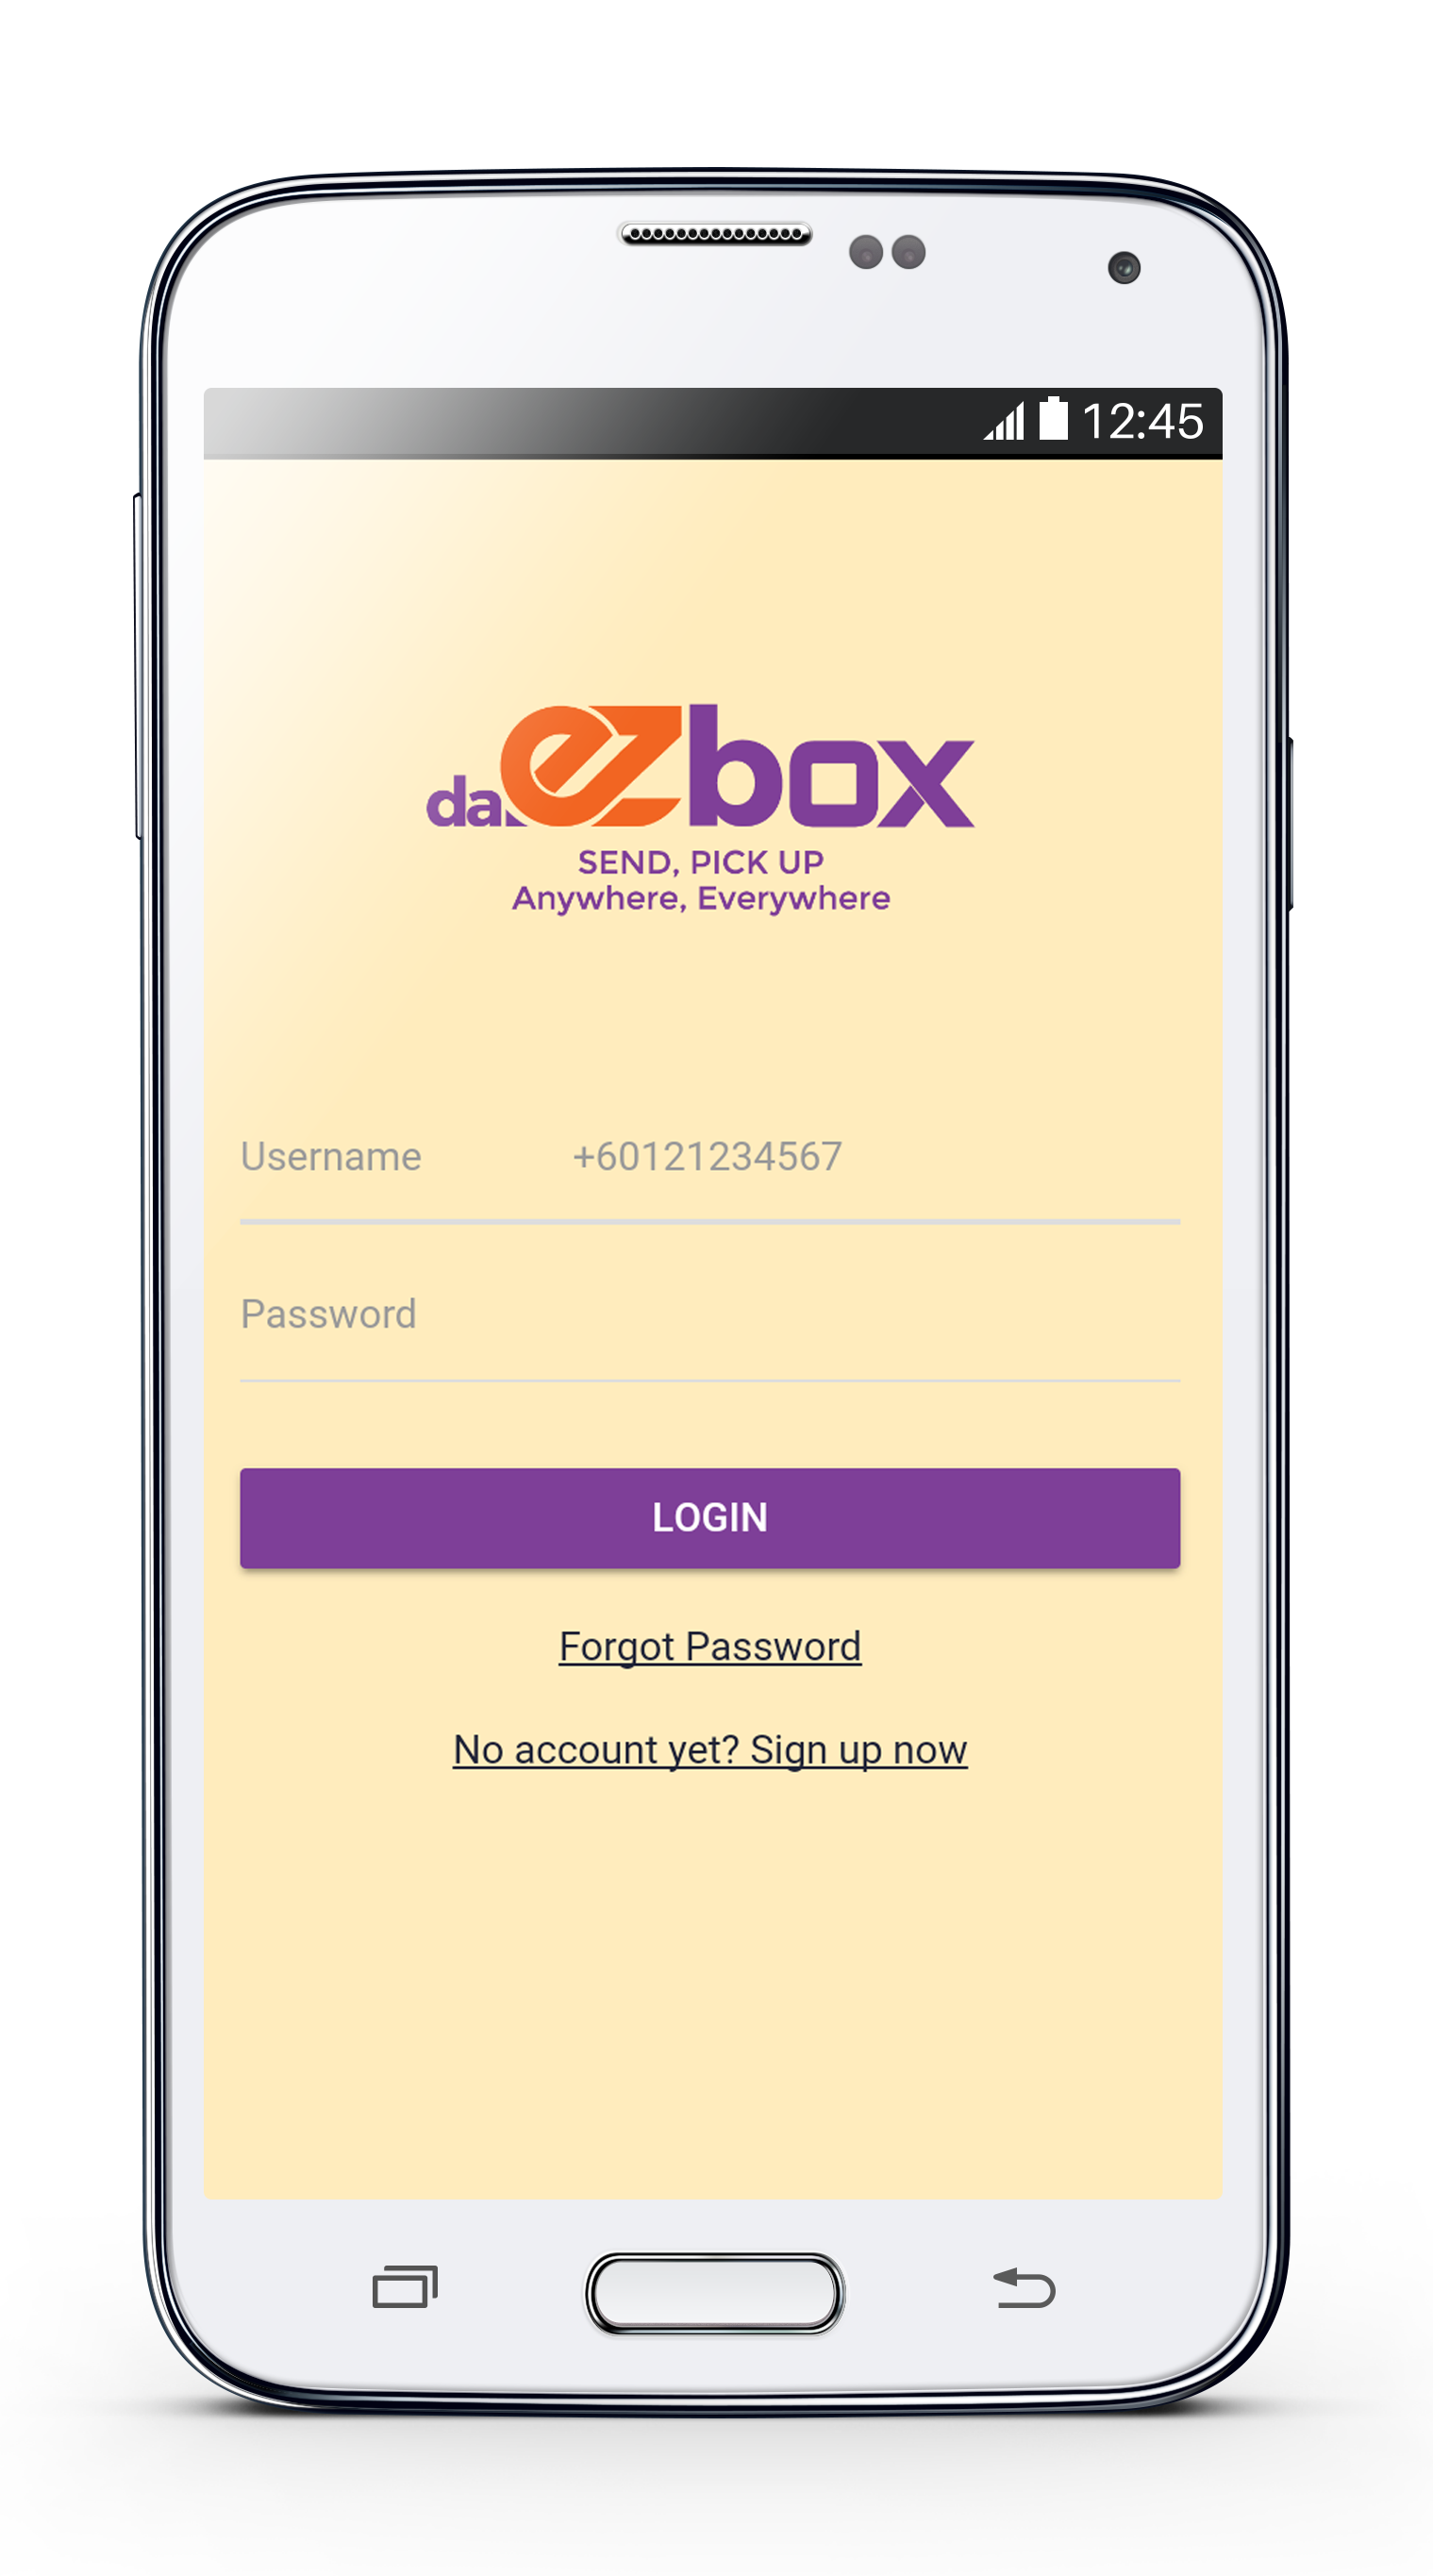 daezbox mobile apps